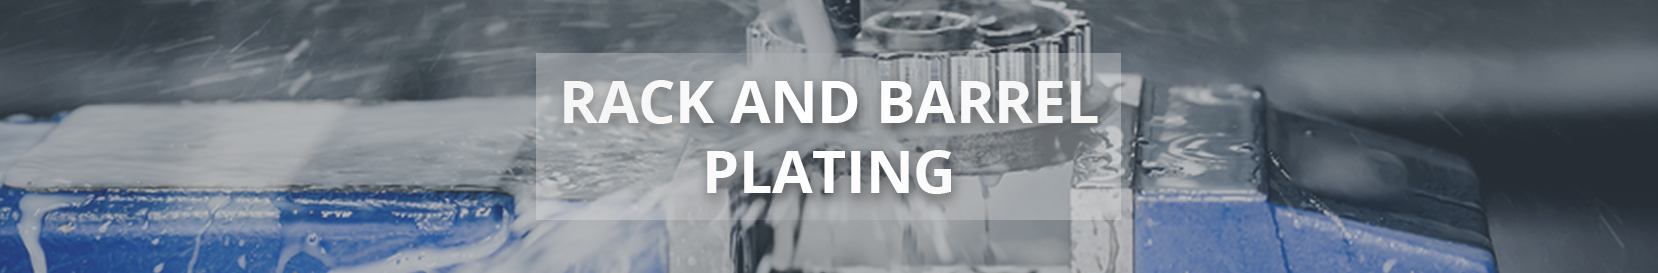 Rack and Barrel Plating Banner